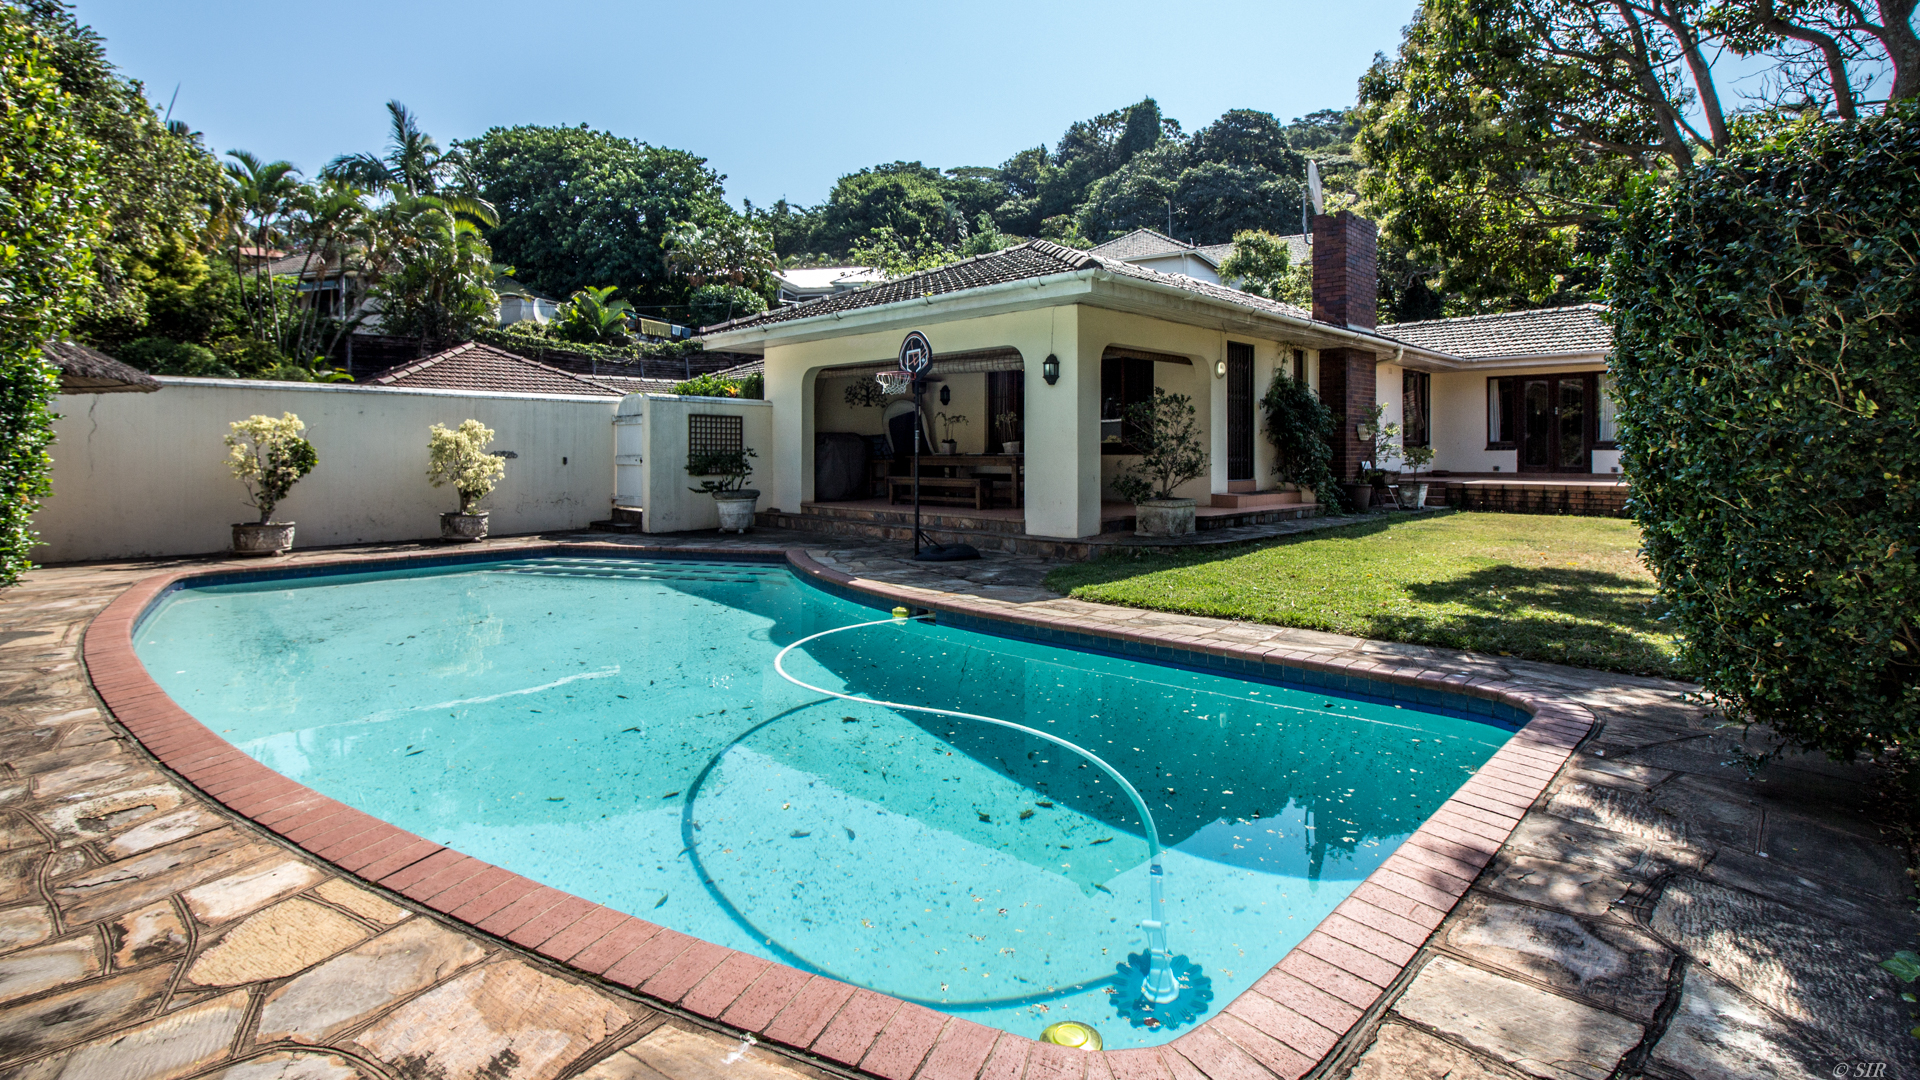 Single Family Home for Sale at Durban North Durban, Kwazulu-Natal, South Africa